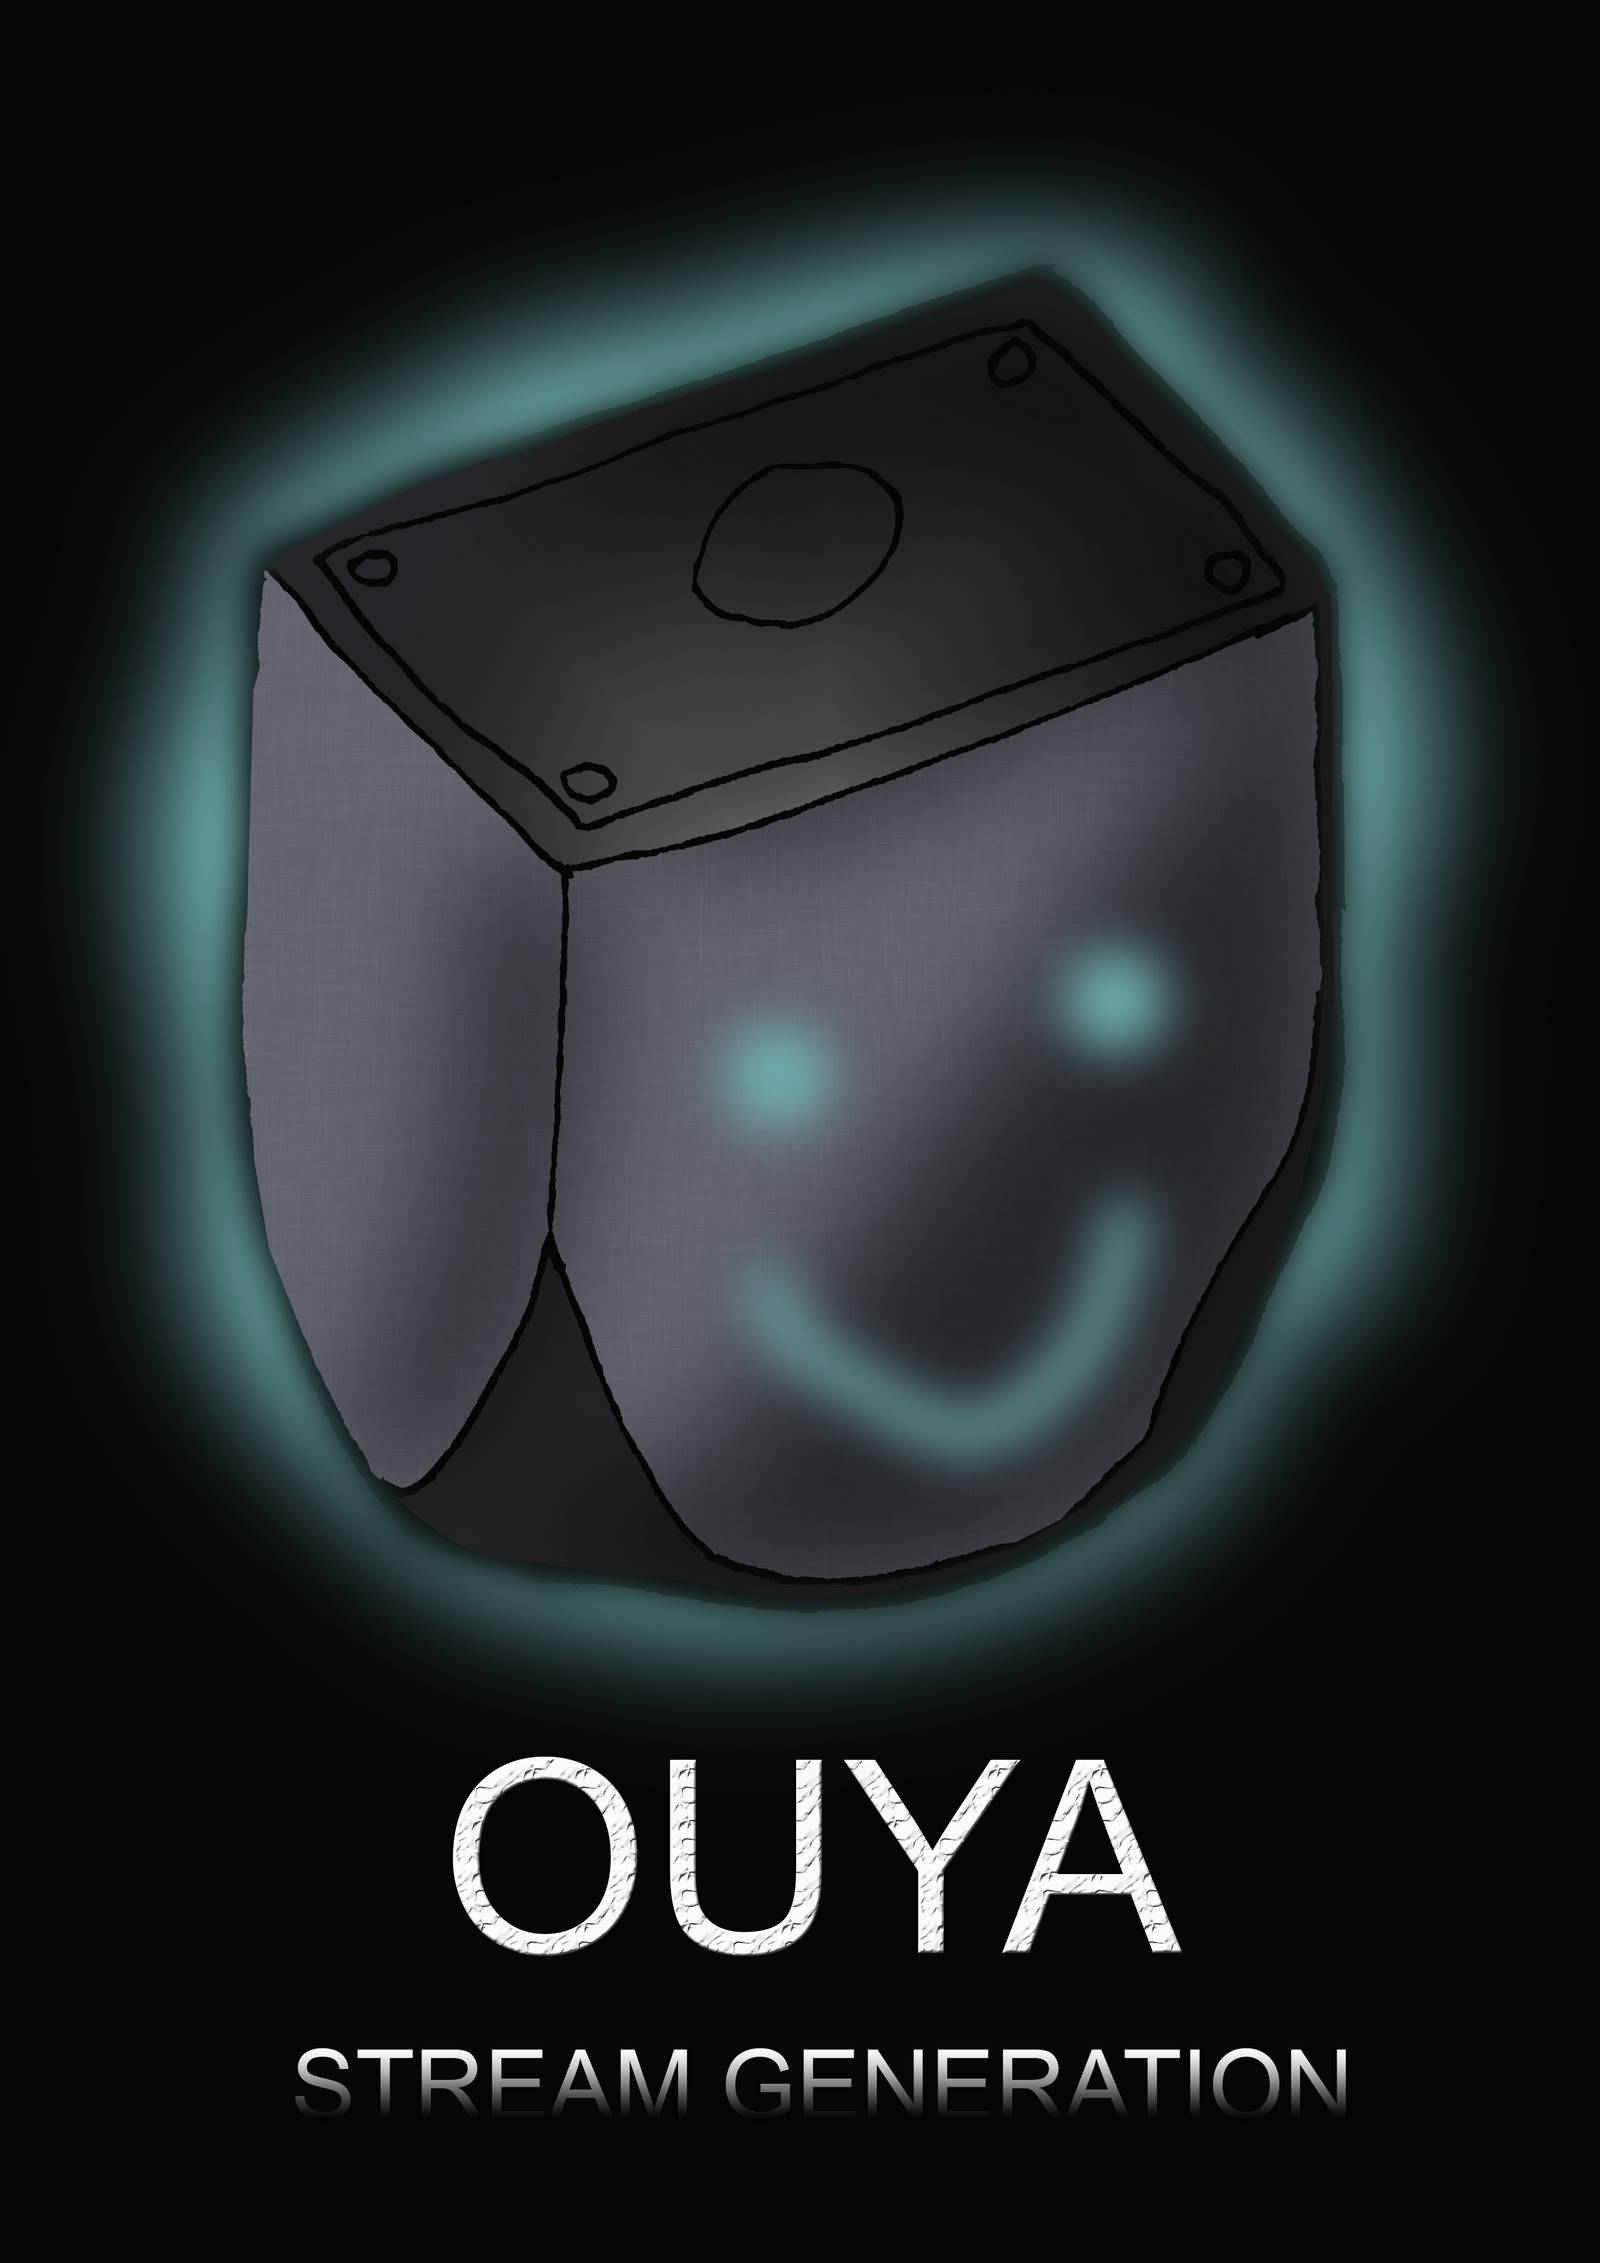 [REQUEST] Ouya stream generation by DrPingas